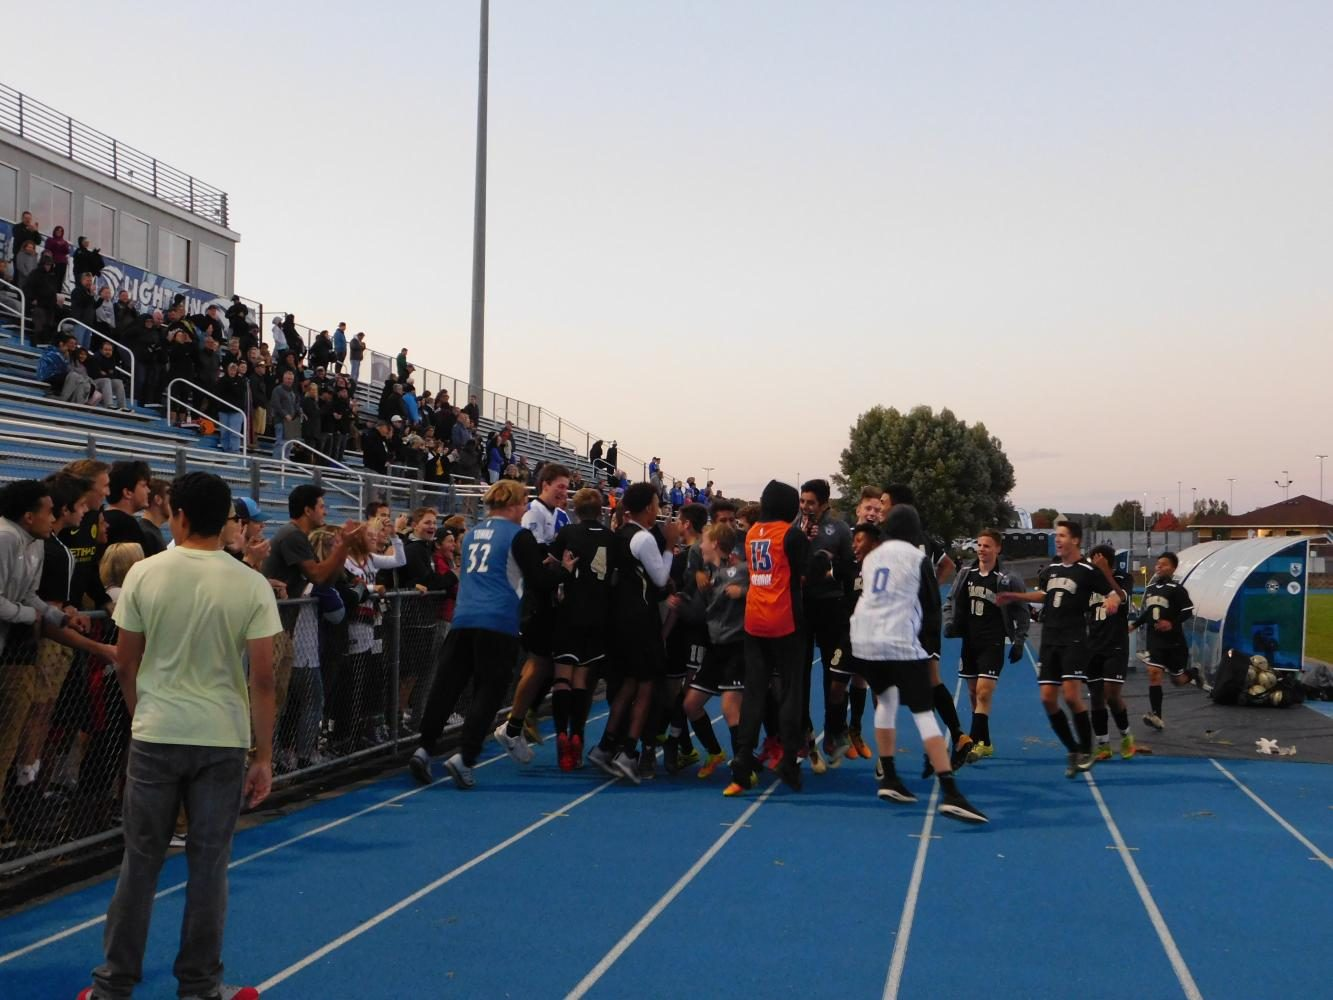 After the win, AVHS fans burst onto the field to congratulate the boys.